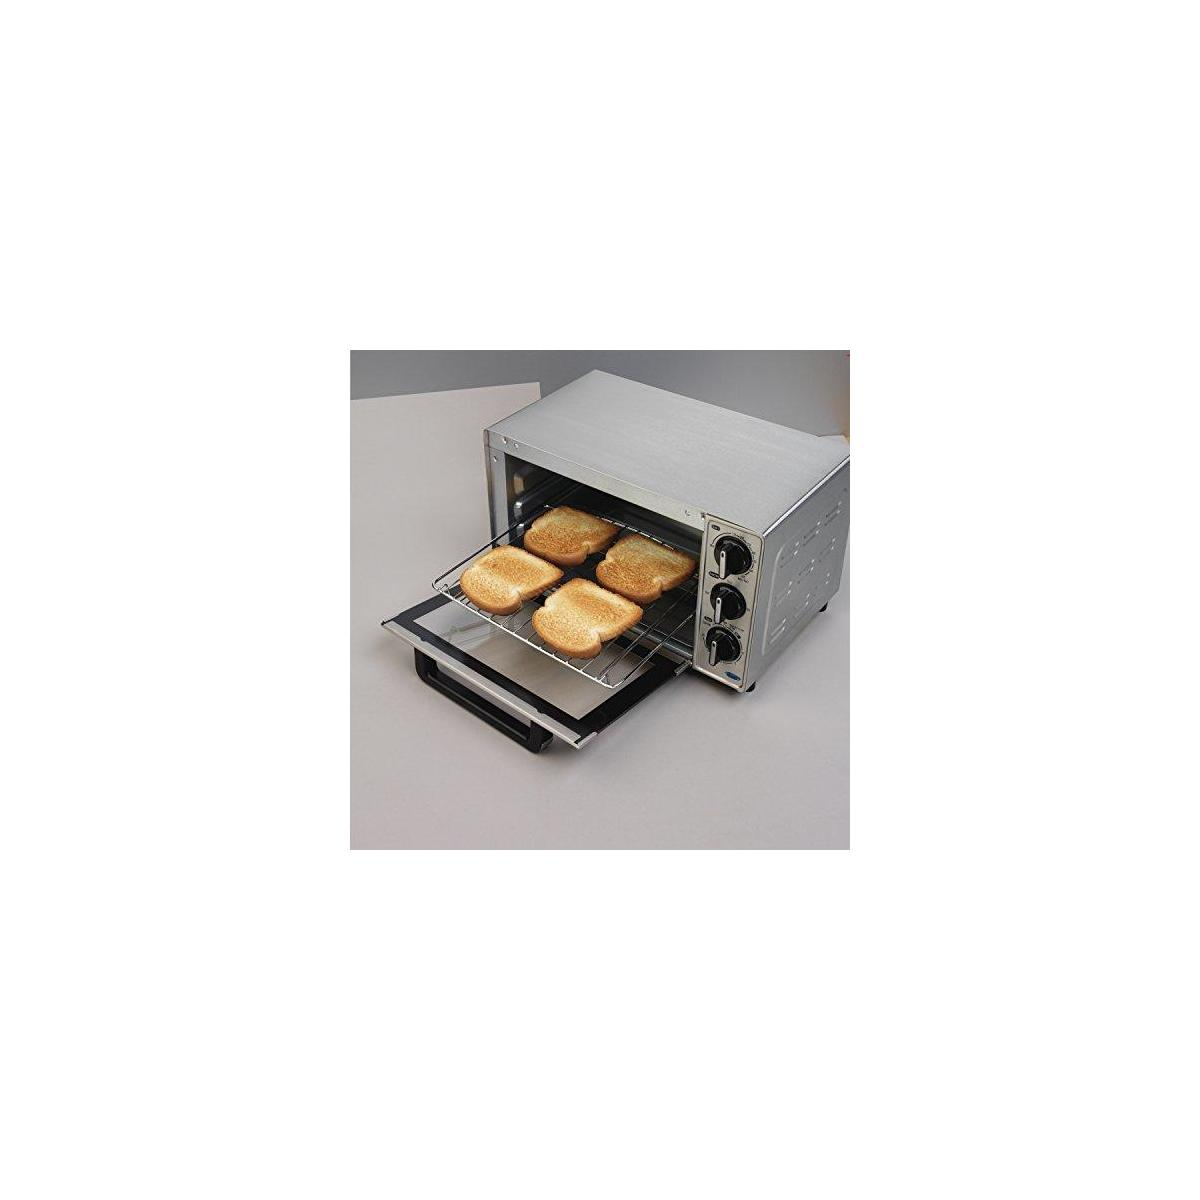 Hamilton Beach 31401 Toaster Oven, Pizza Maker, Large Capacity, Stainless Steel (STYLE: Toast, Bake, and Broil)